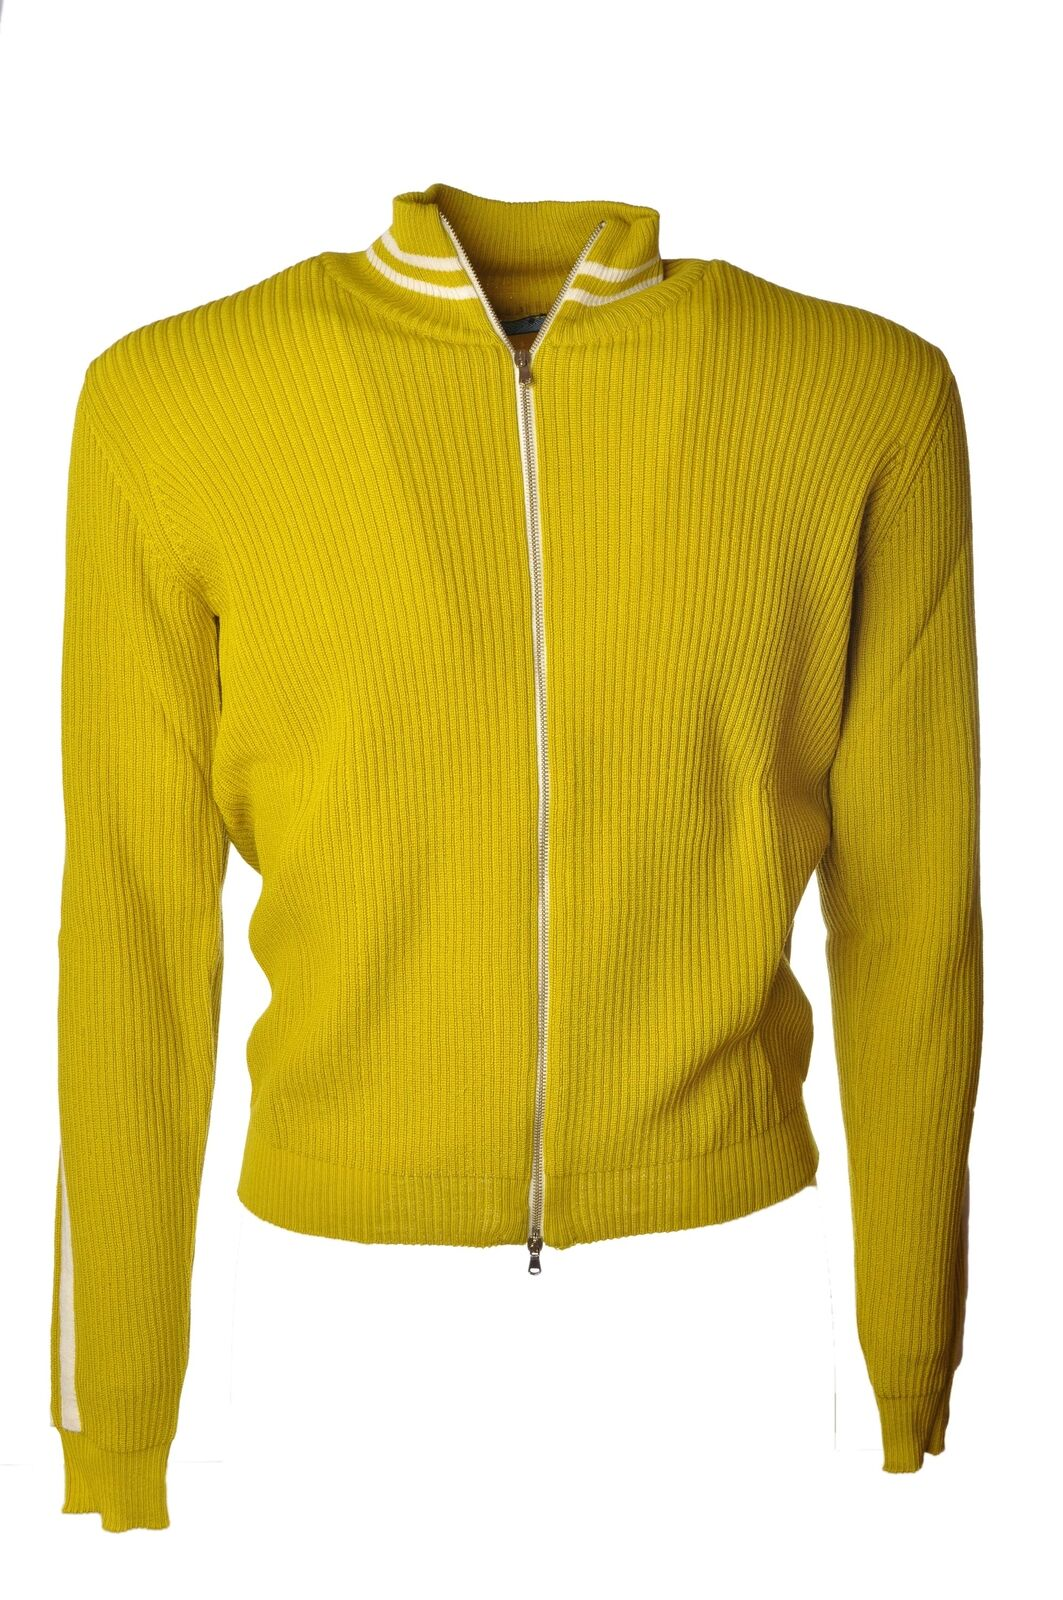 Paolo Fumagalli  -  Sweaters - Male - Yellow - 4158728A184502